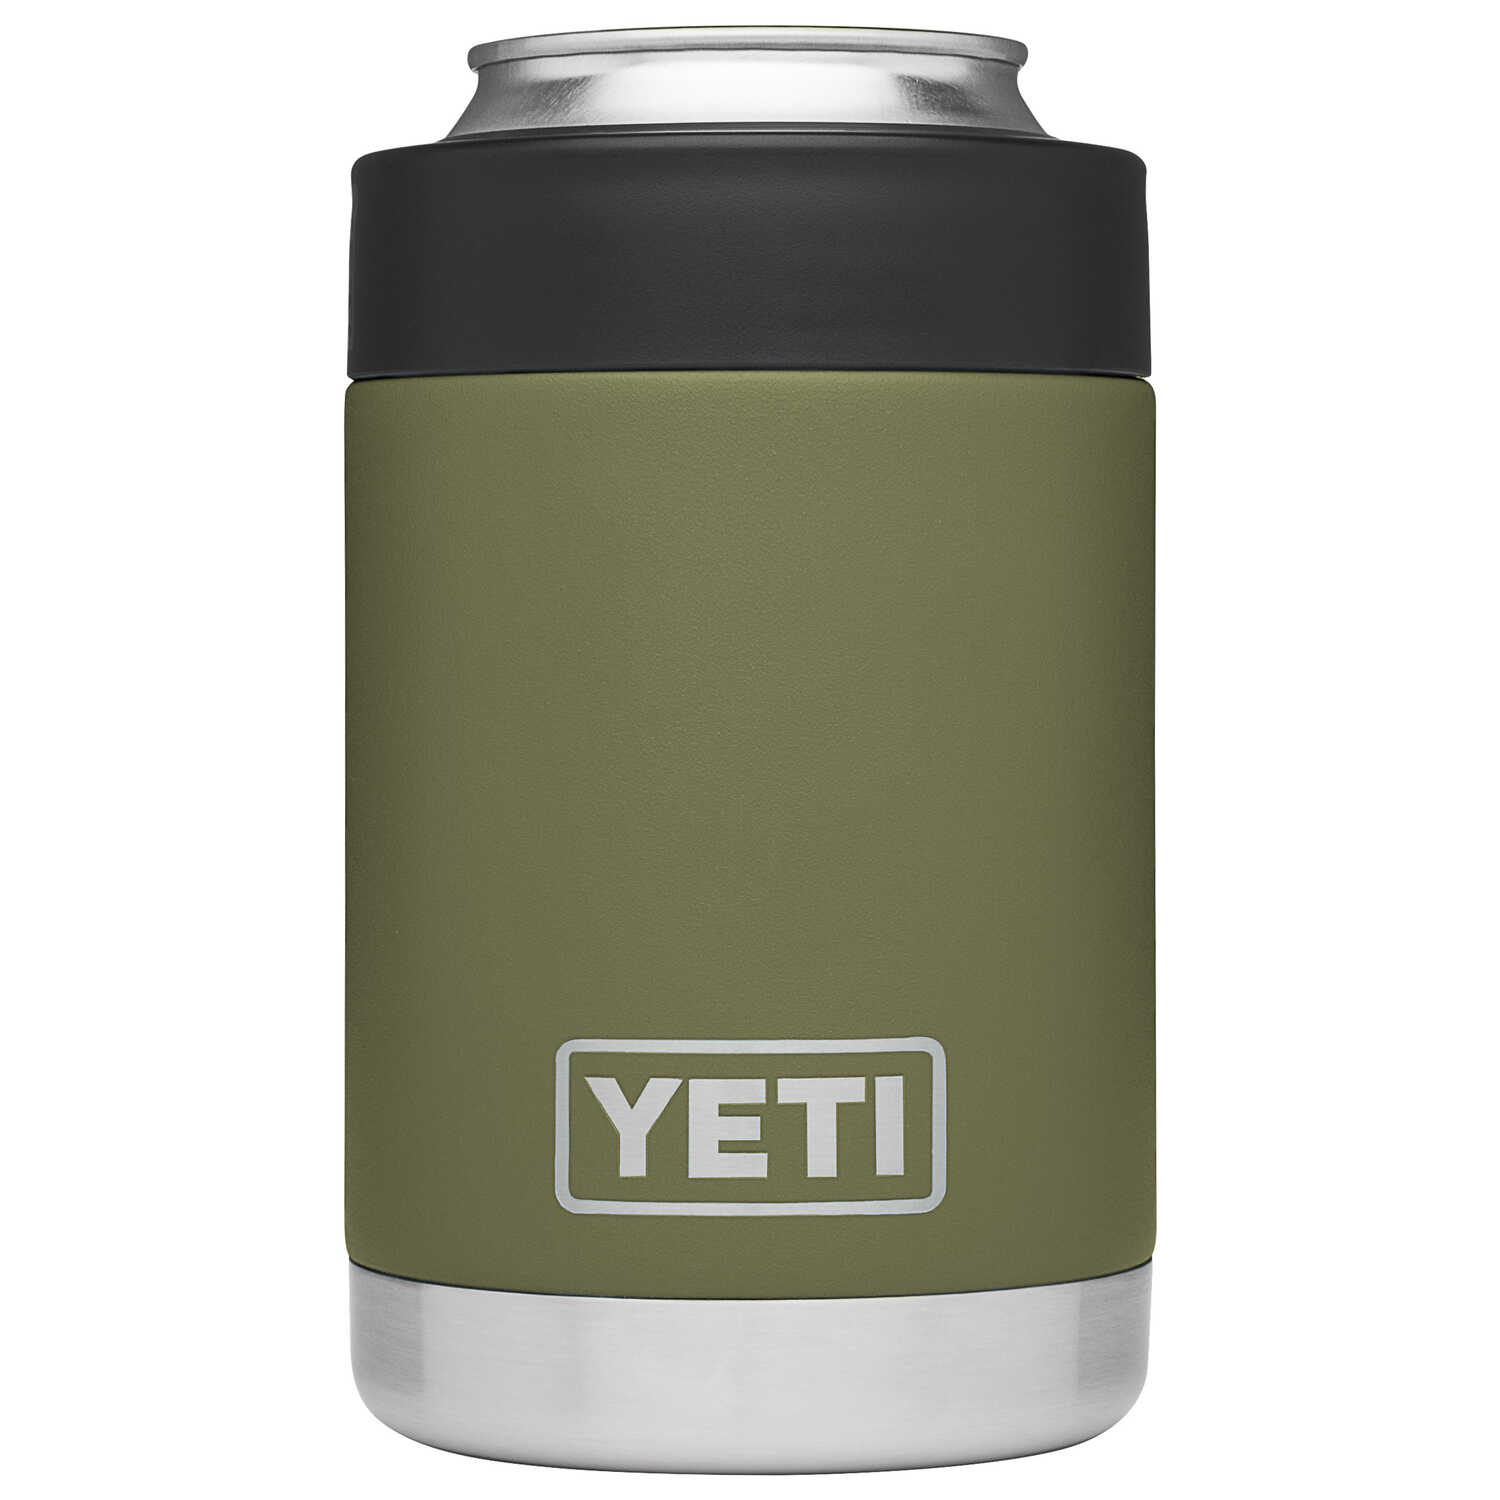 YETI  Rambler Colster  Olive Green  Beverage Holder  BPA Free 12  Stainless Steel